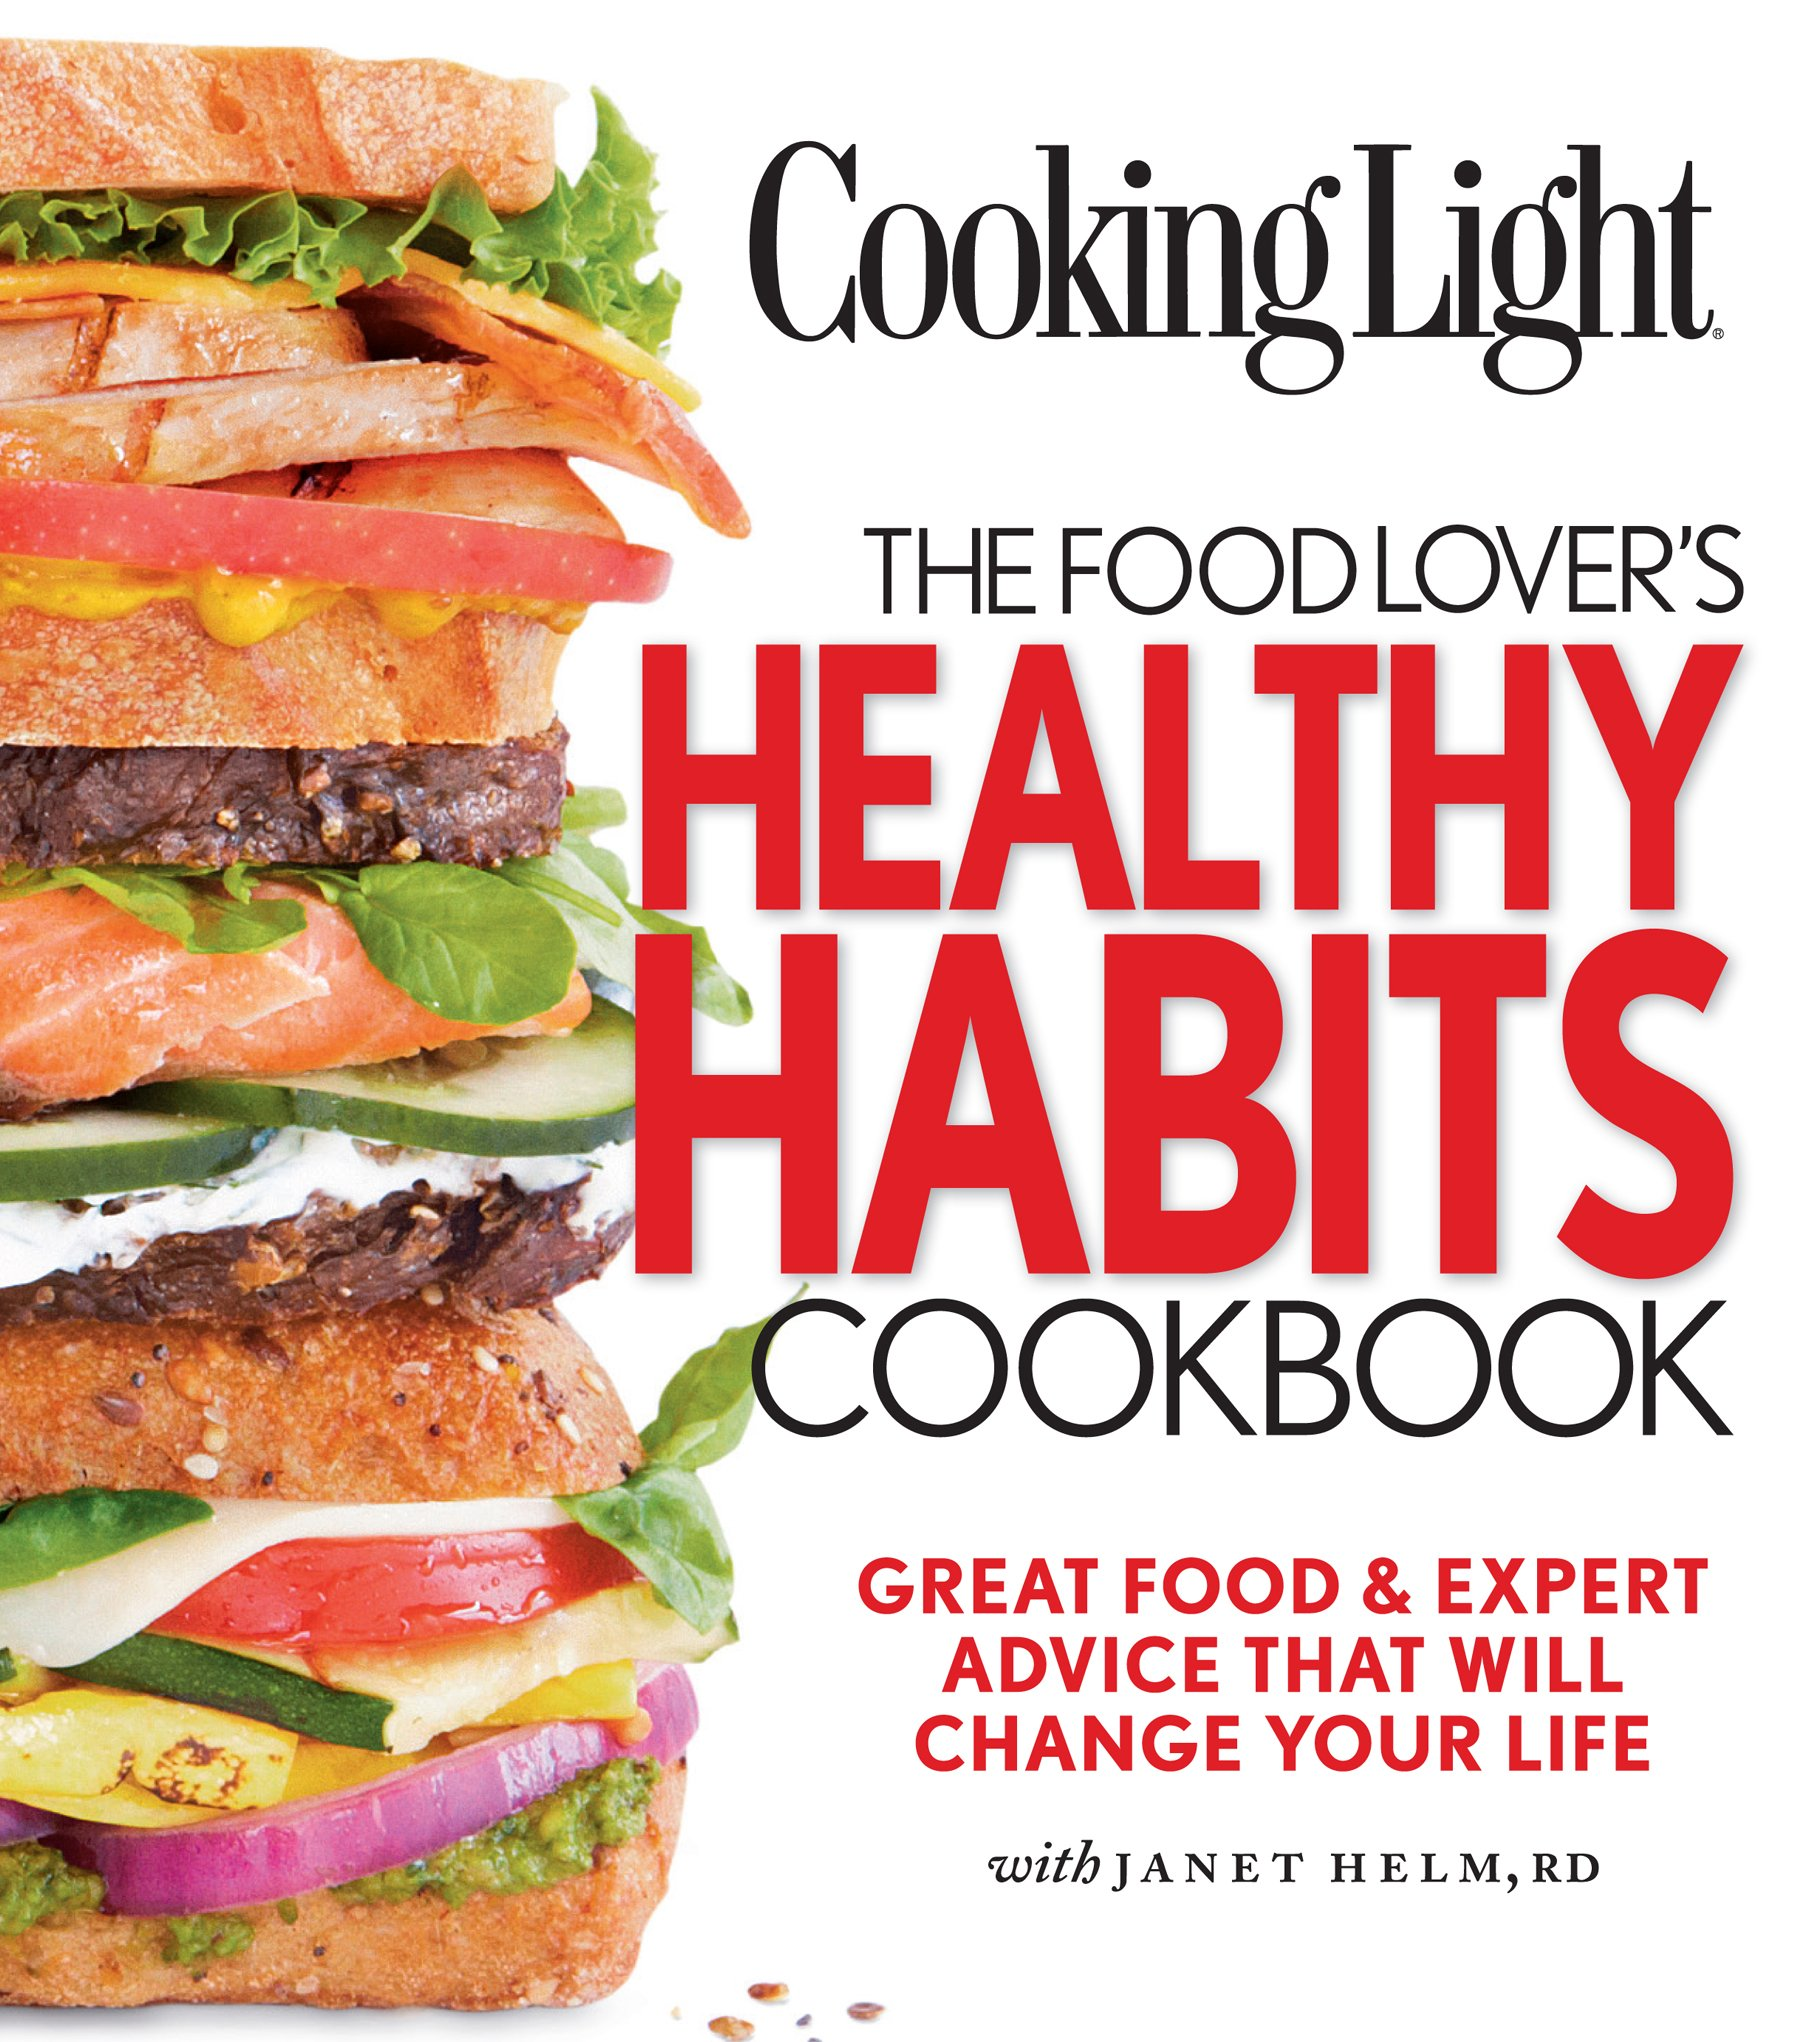 Cooking light the food lovers healthy habits cookbook great food cooking light the food lovers healthy habits cookbook great food expert advice that will change your life janet helm editors of cooking light forumfinder Choice Image